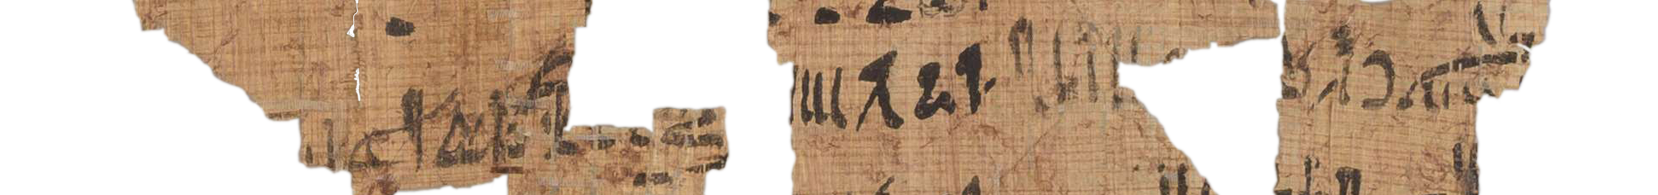 the Turin king list 4.8 (photo of the hieratic text)